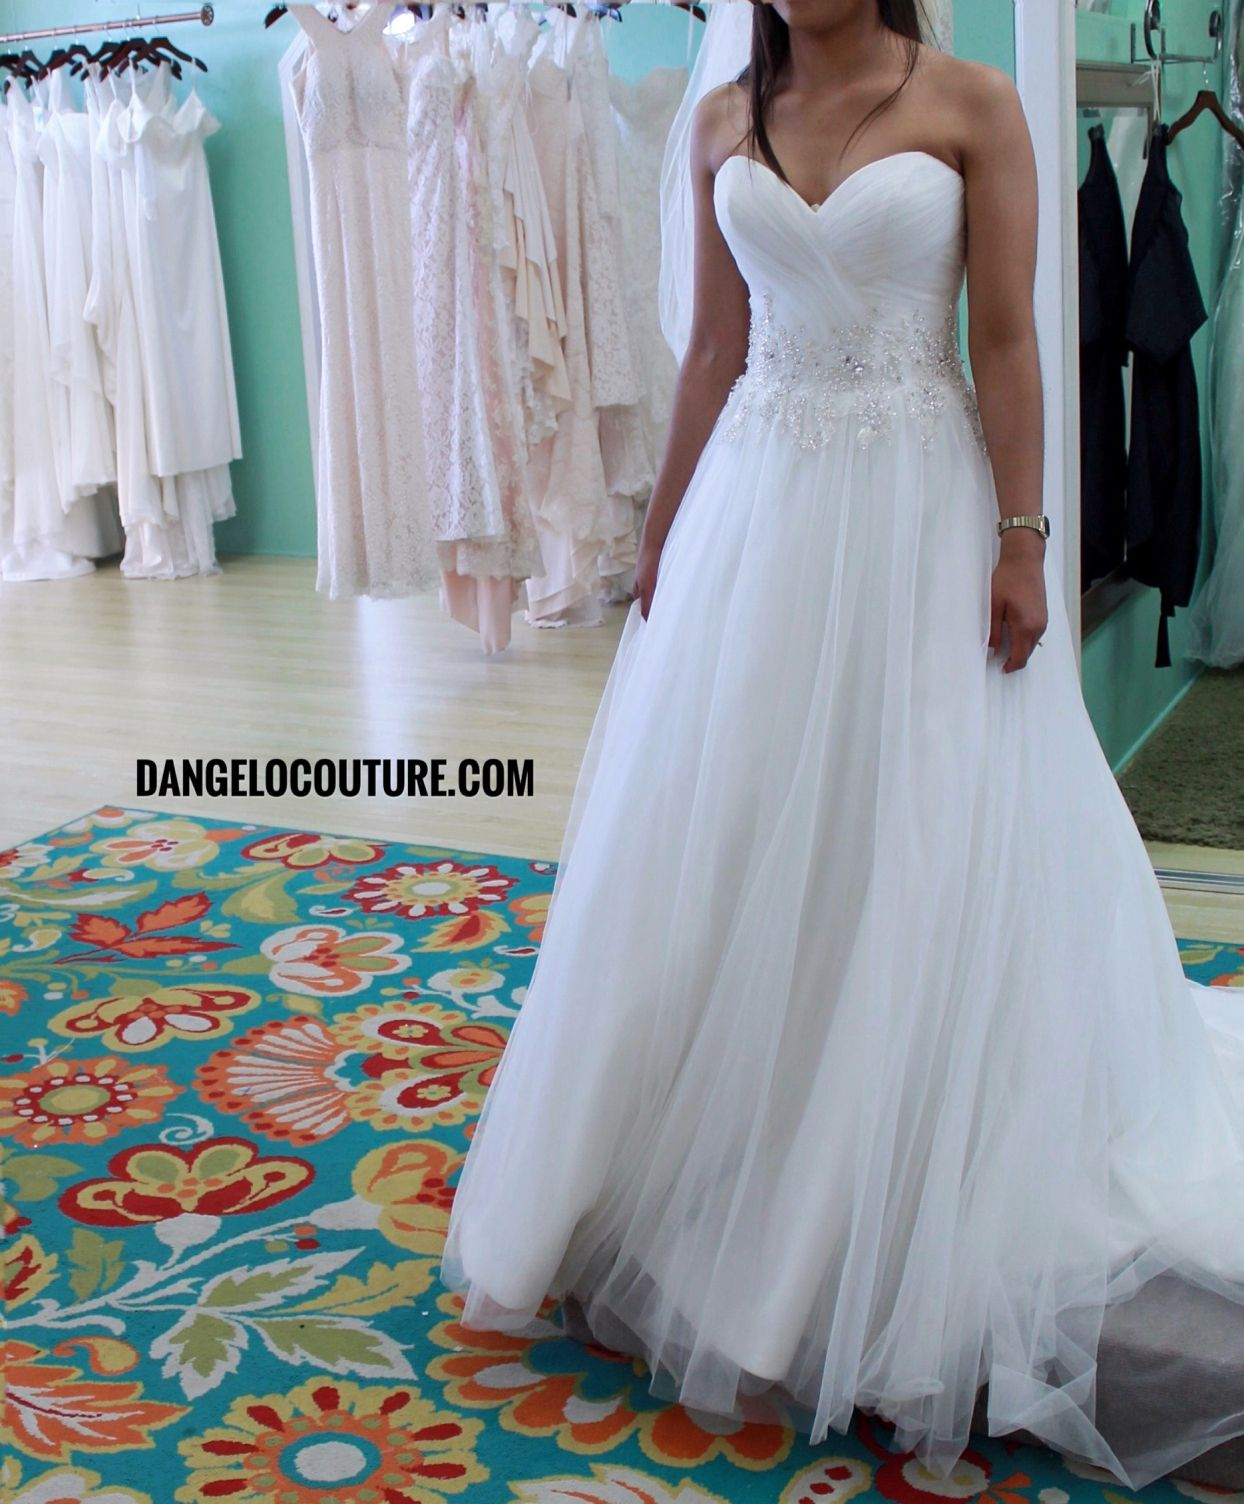 Wedding Dress San Diego - Wedding Dresses for Guests Check more at ...